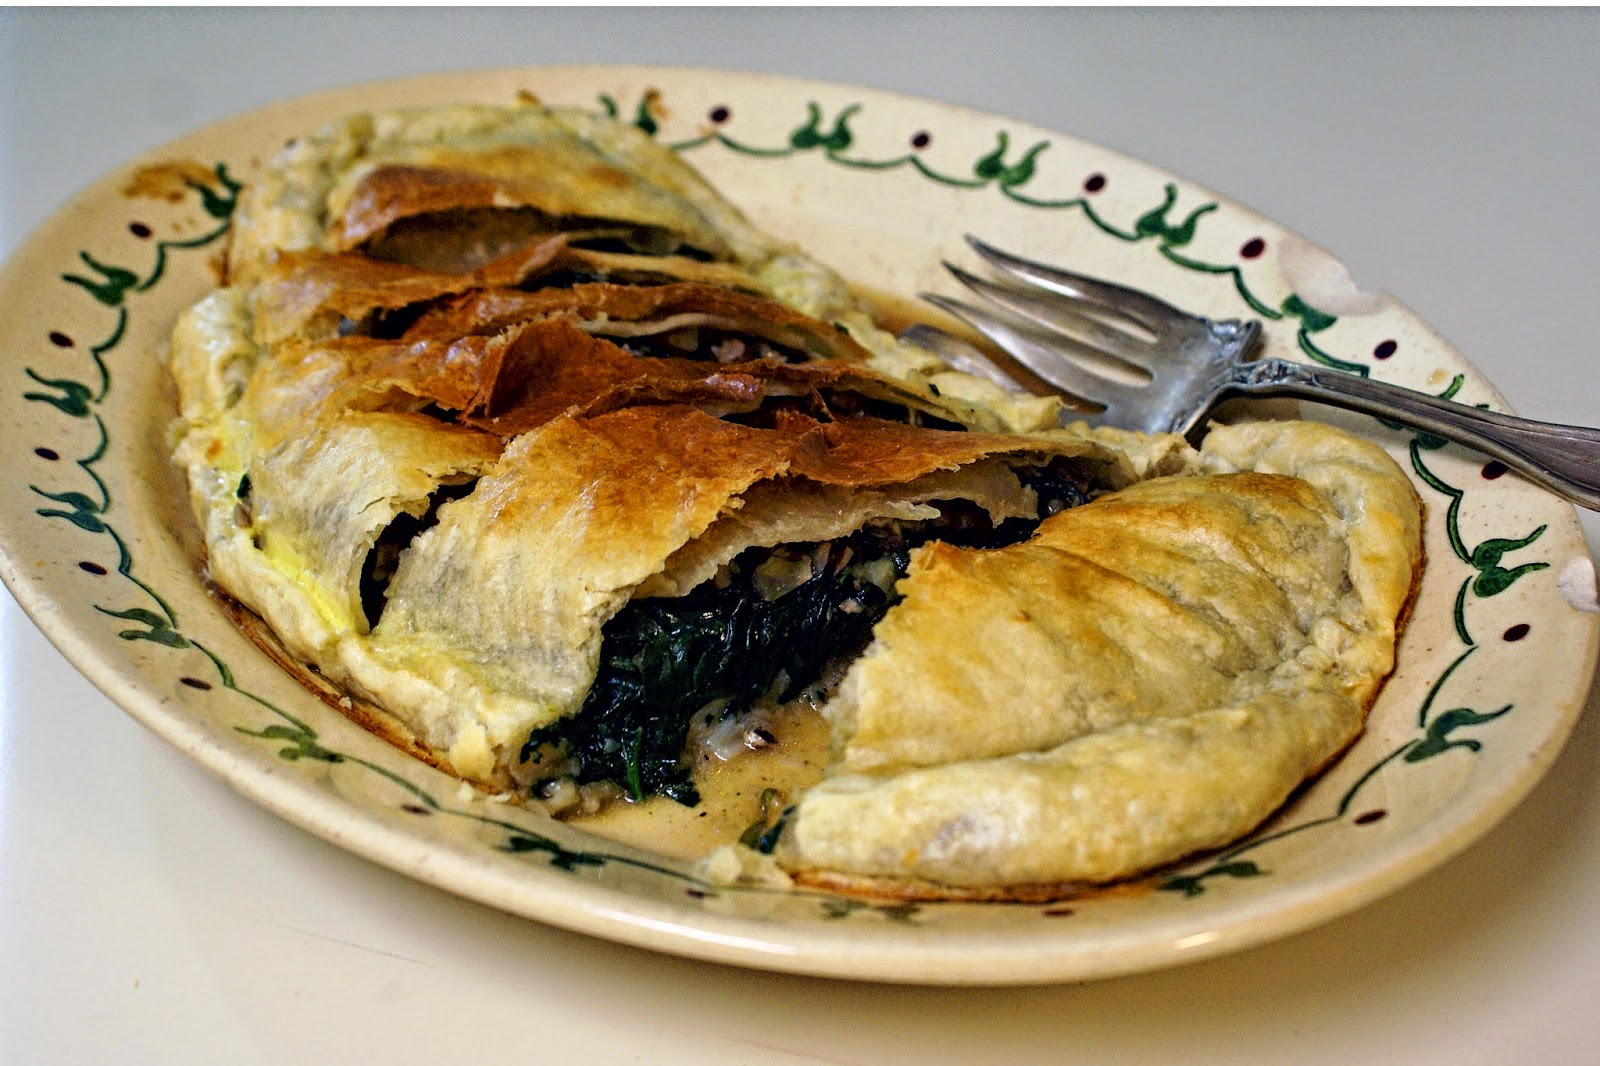 Fish Stuffed with Spinach and Pecans in Puff Pastry